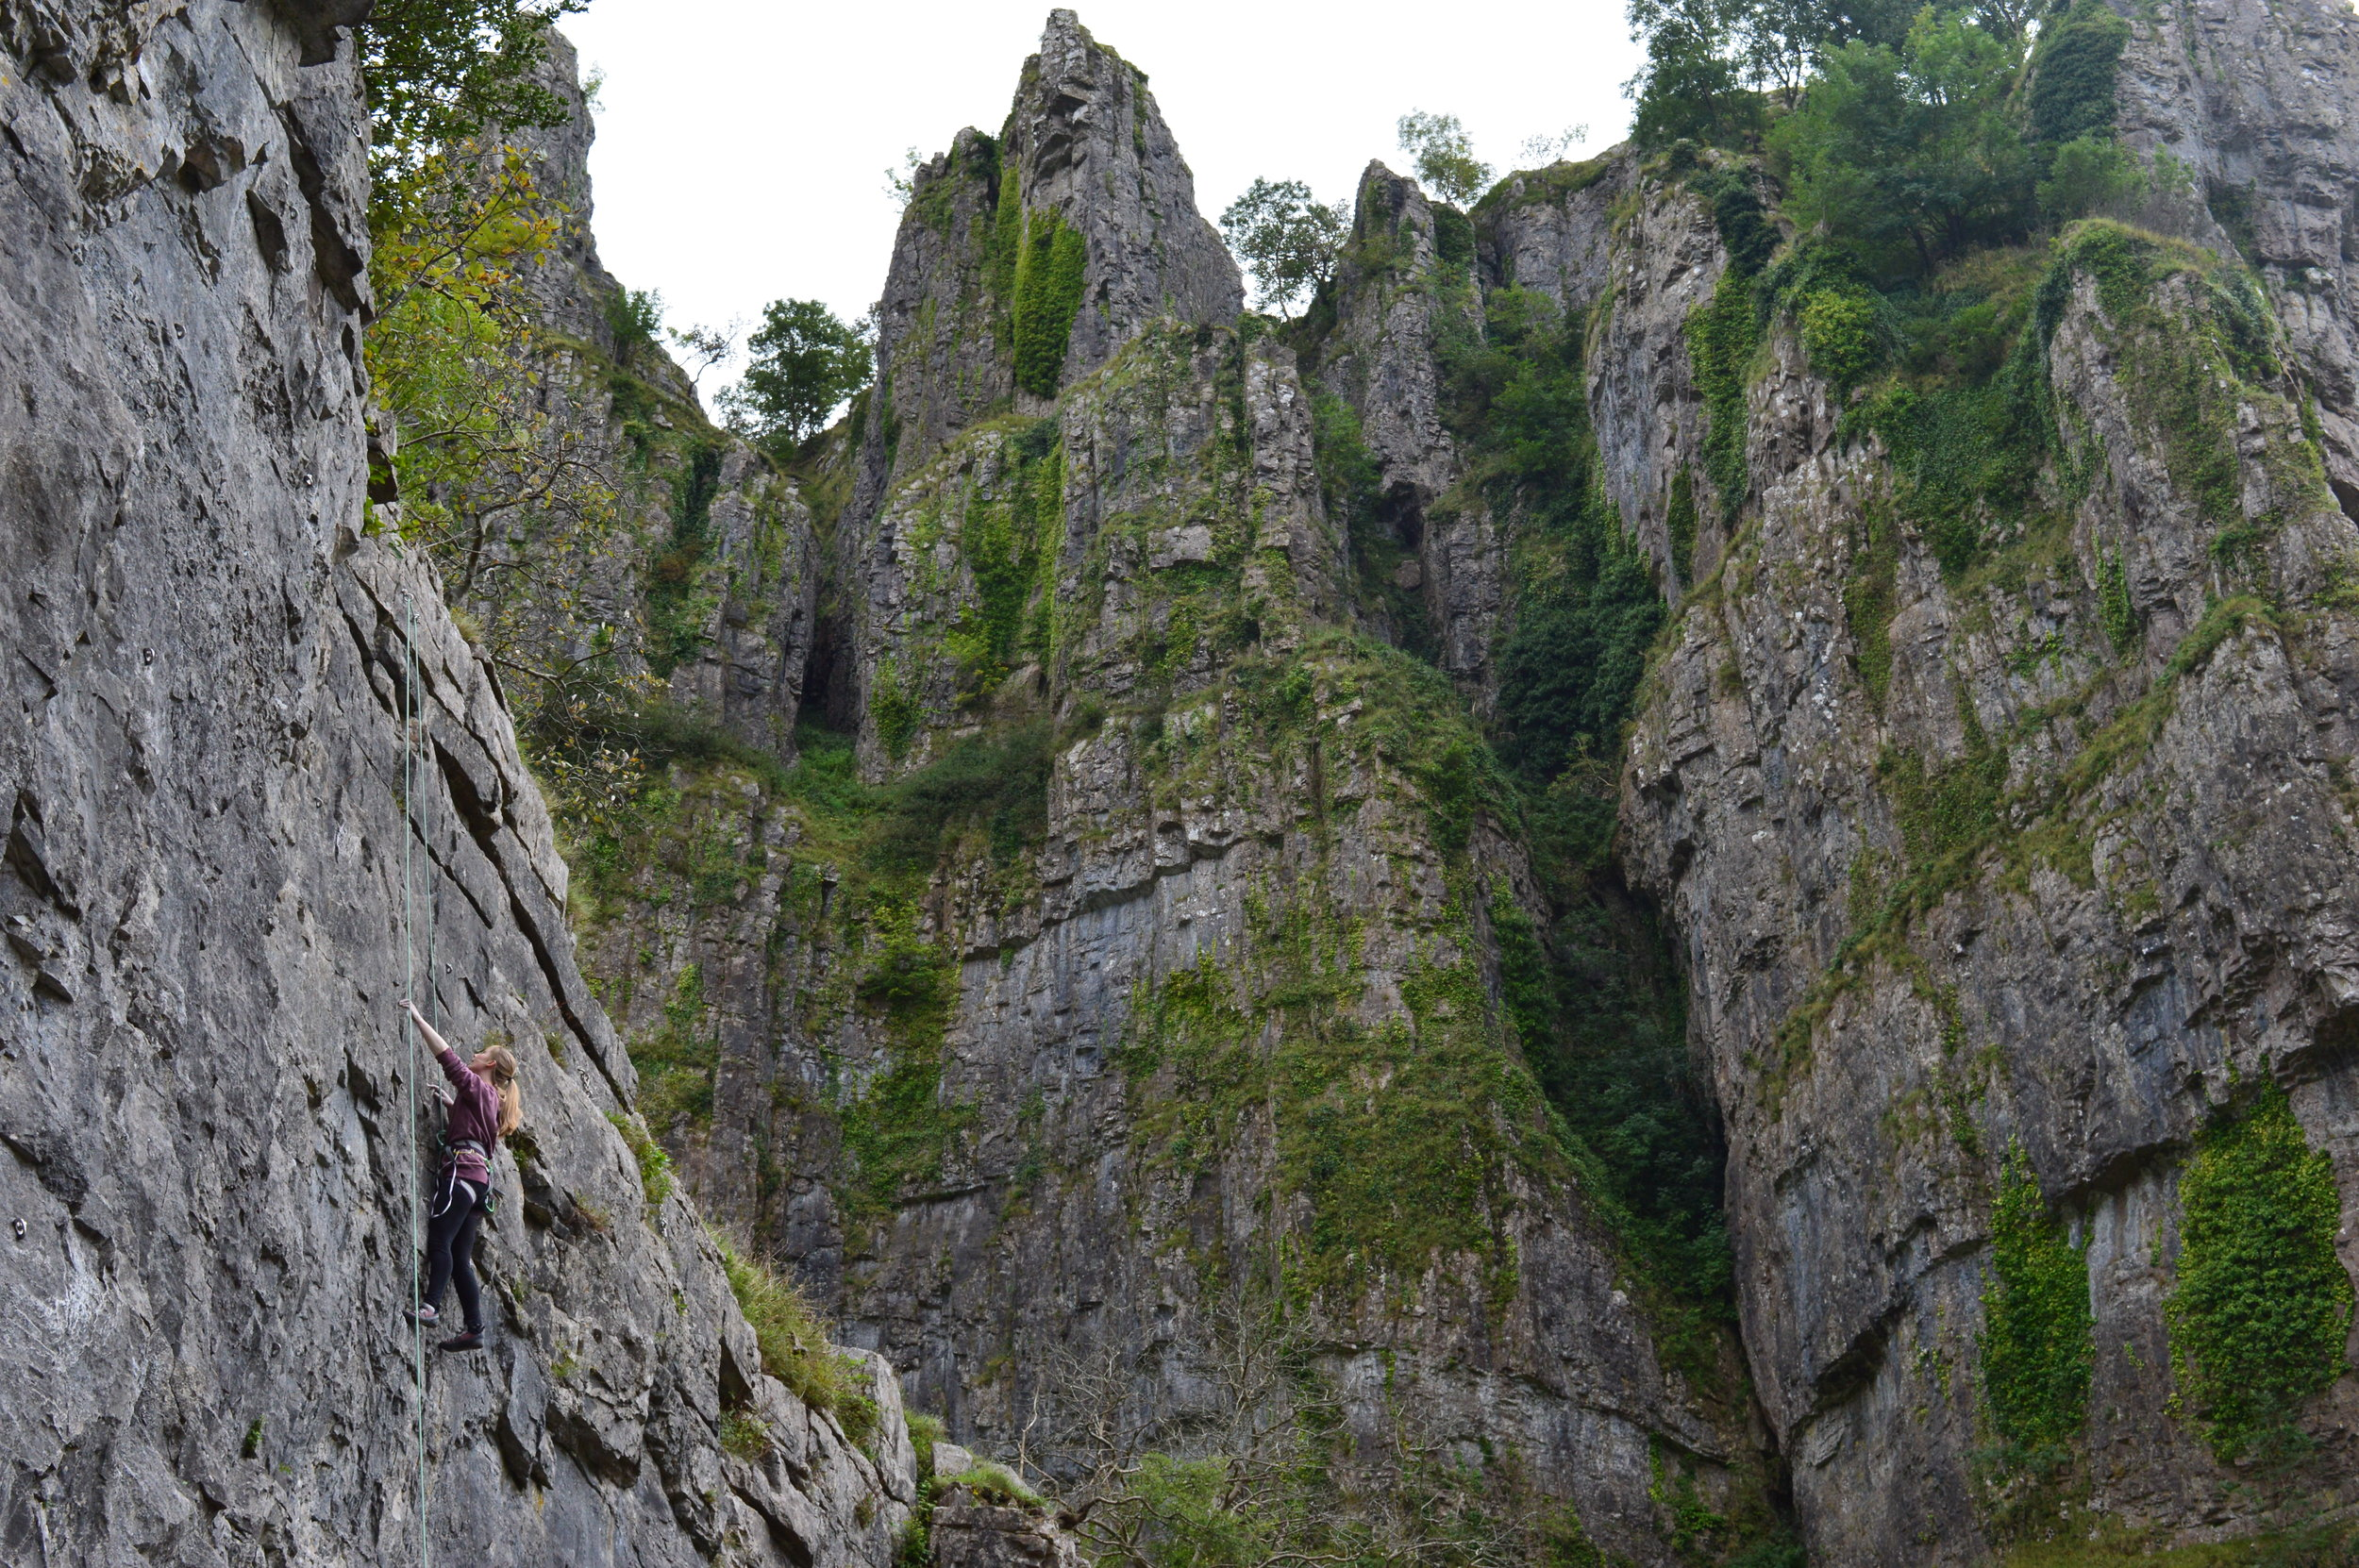 You don't have to go far to find awesome places to climb. This is Cheddar Gorge, only an hour and a half drive from Worcester. But you can't climb in this beautiful place without someone who can lead.  Photo by Georgie Bull.